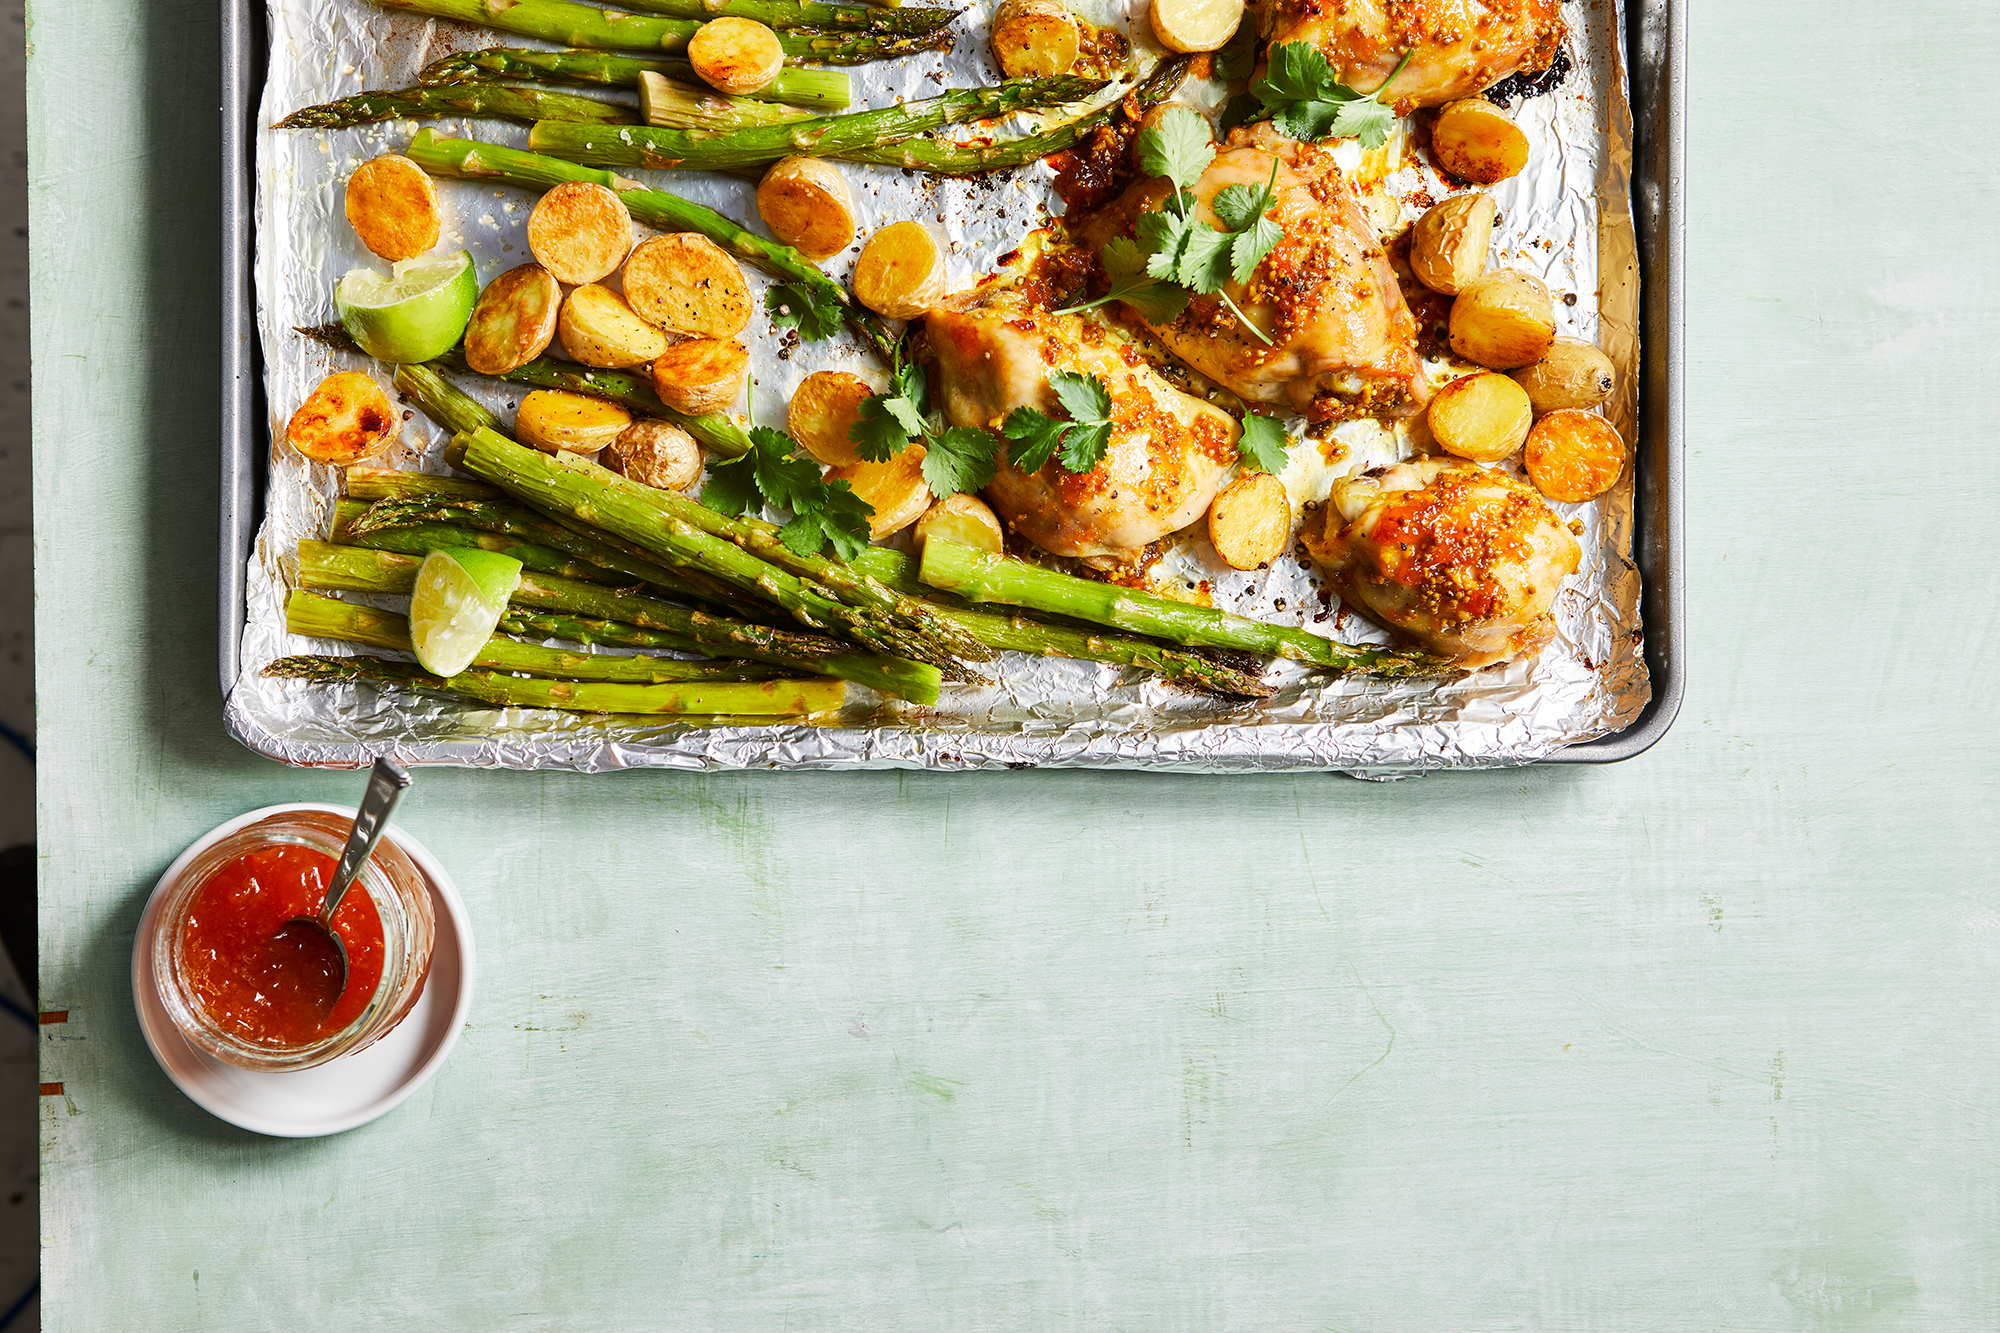 Apricot-Curry Glazed Chicken with Potatoes & Asparagus